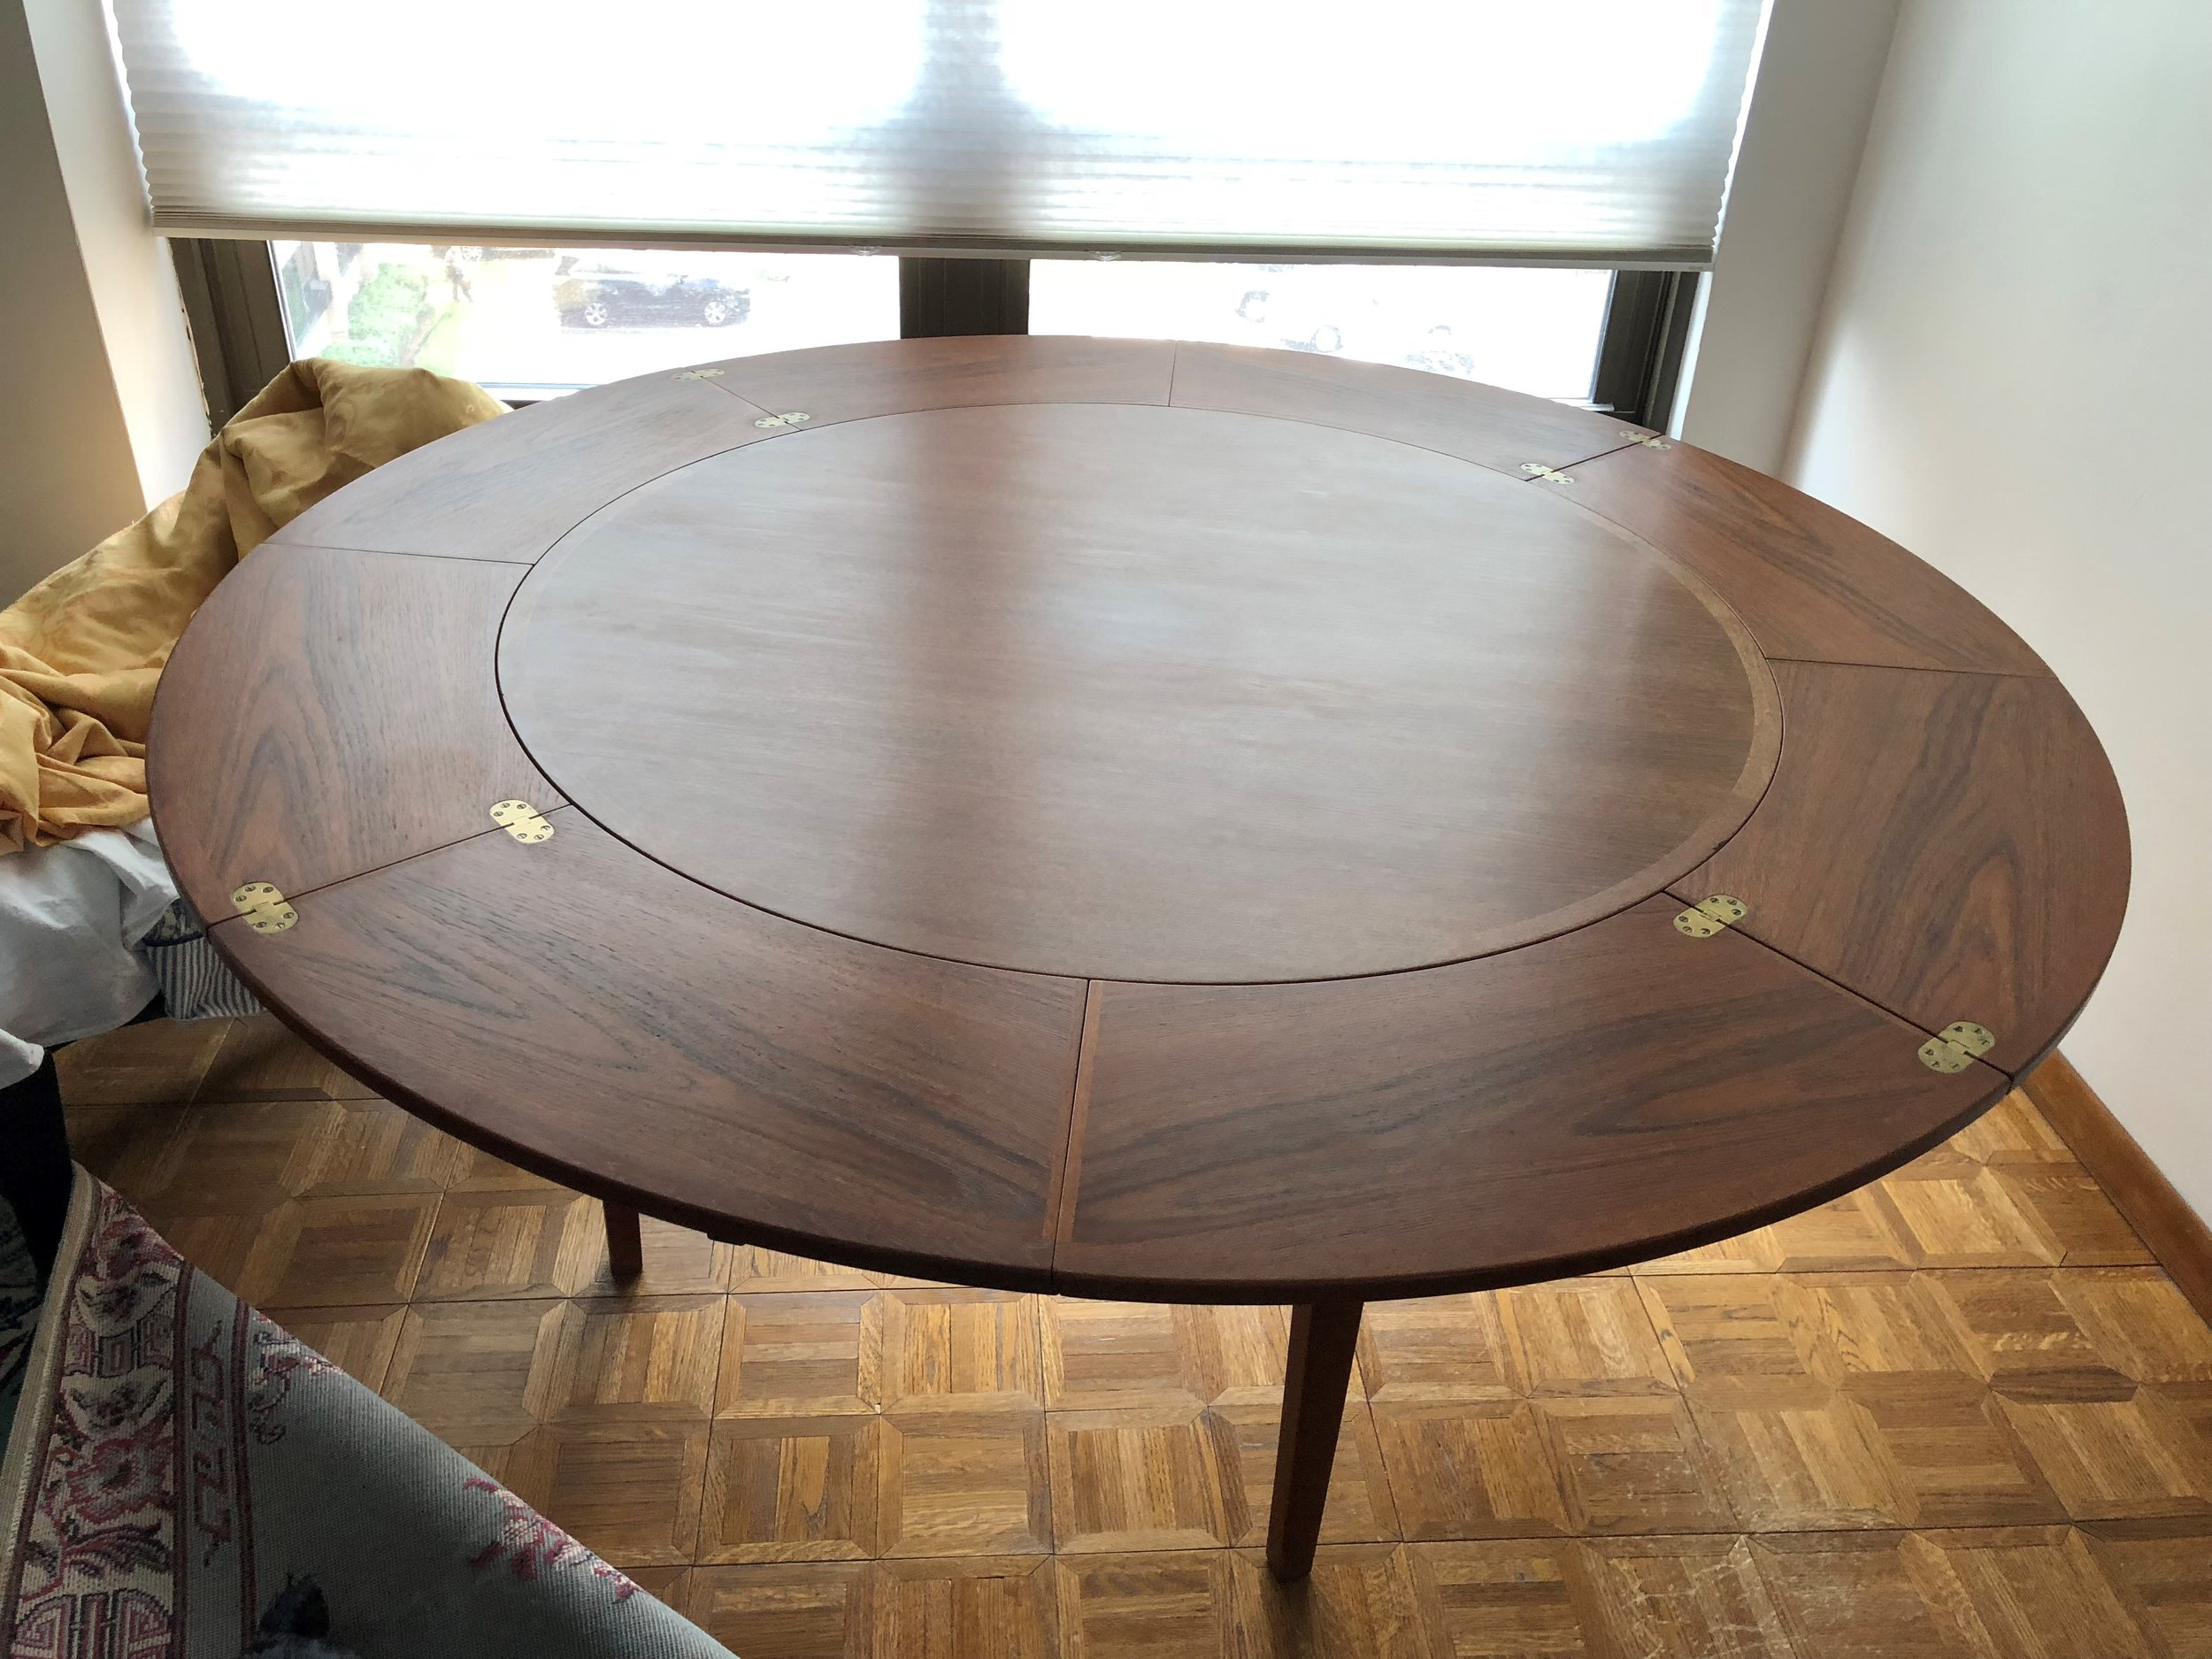 Before- Teak table in open position